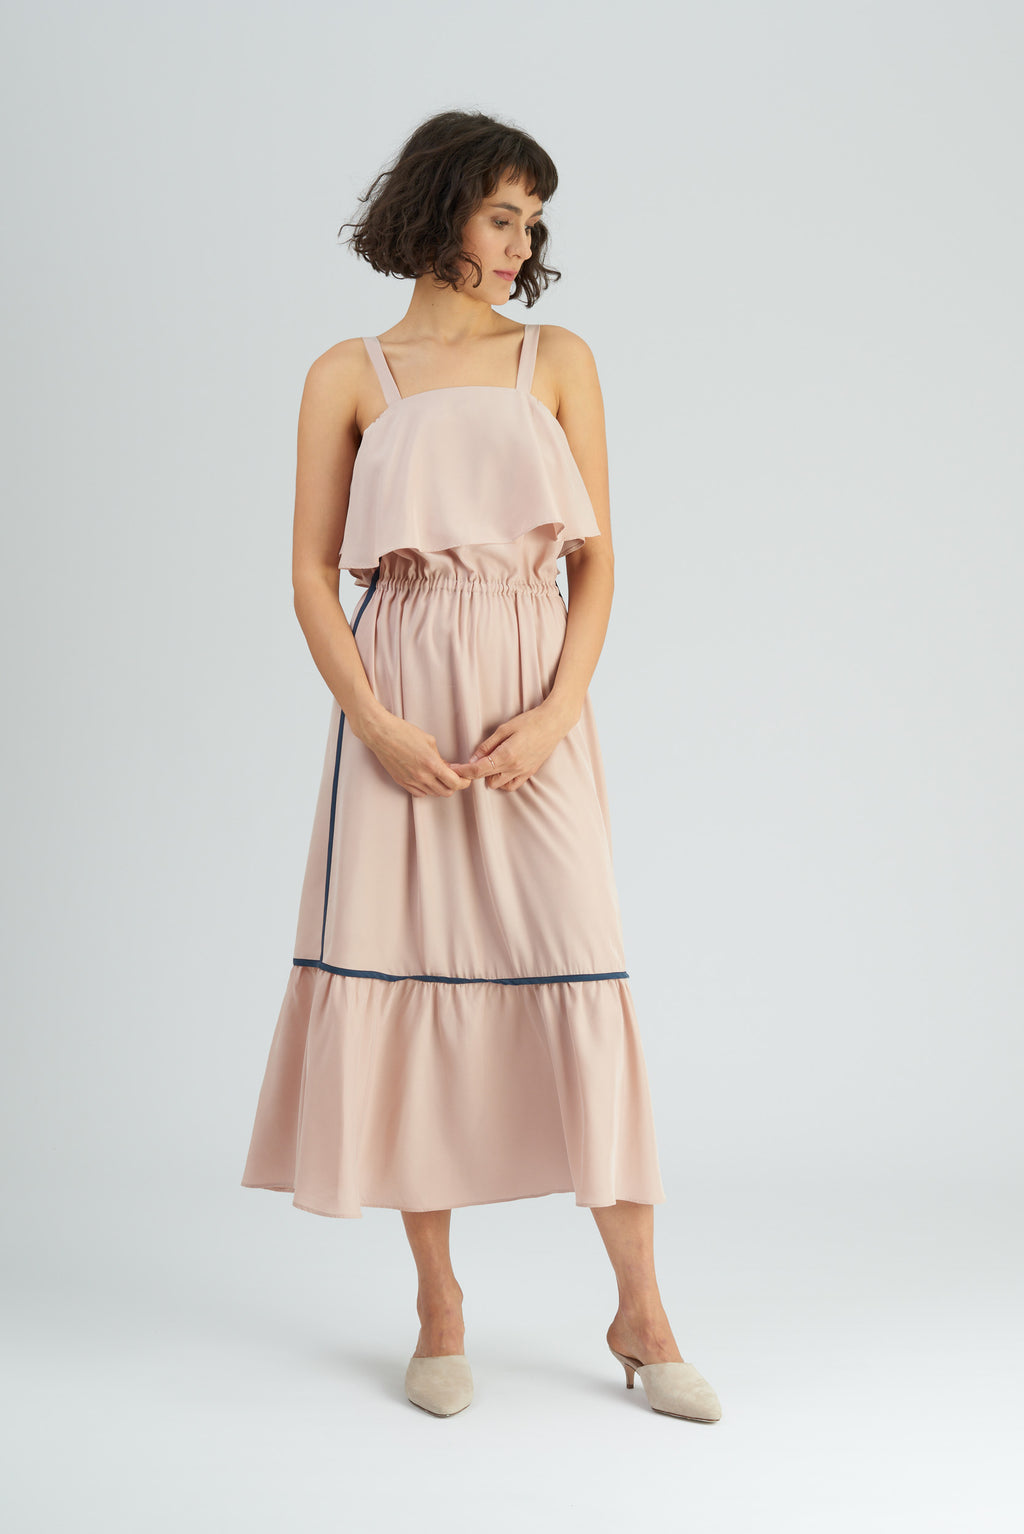 Totka Nude Silky Contrast Ruffled Dress